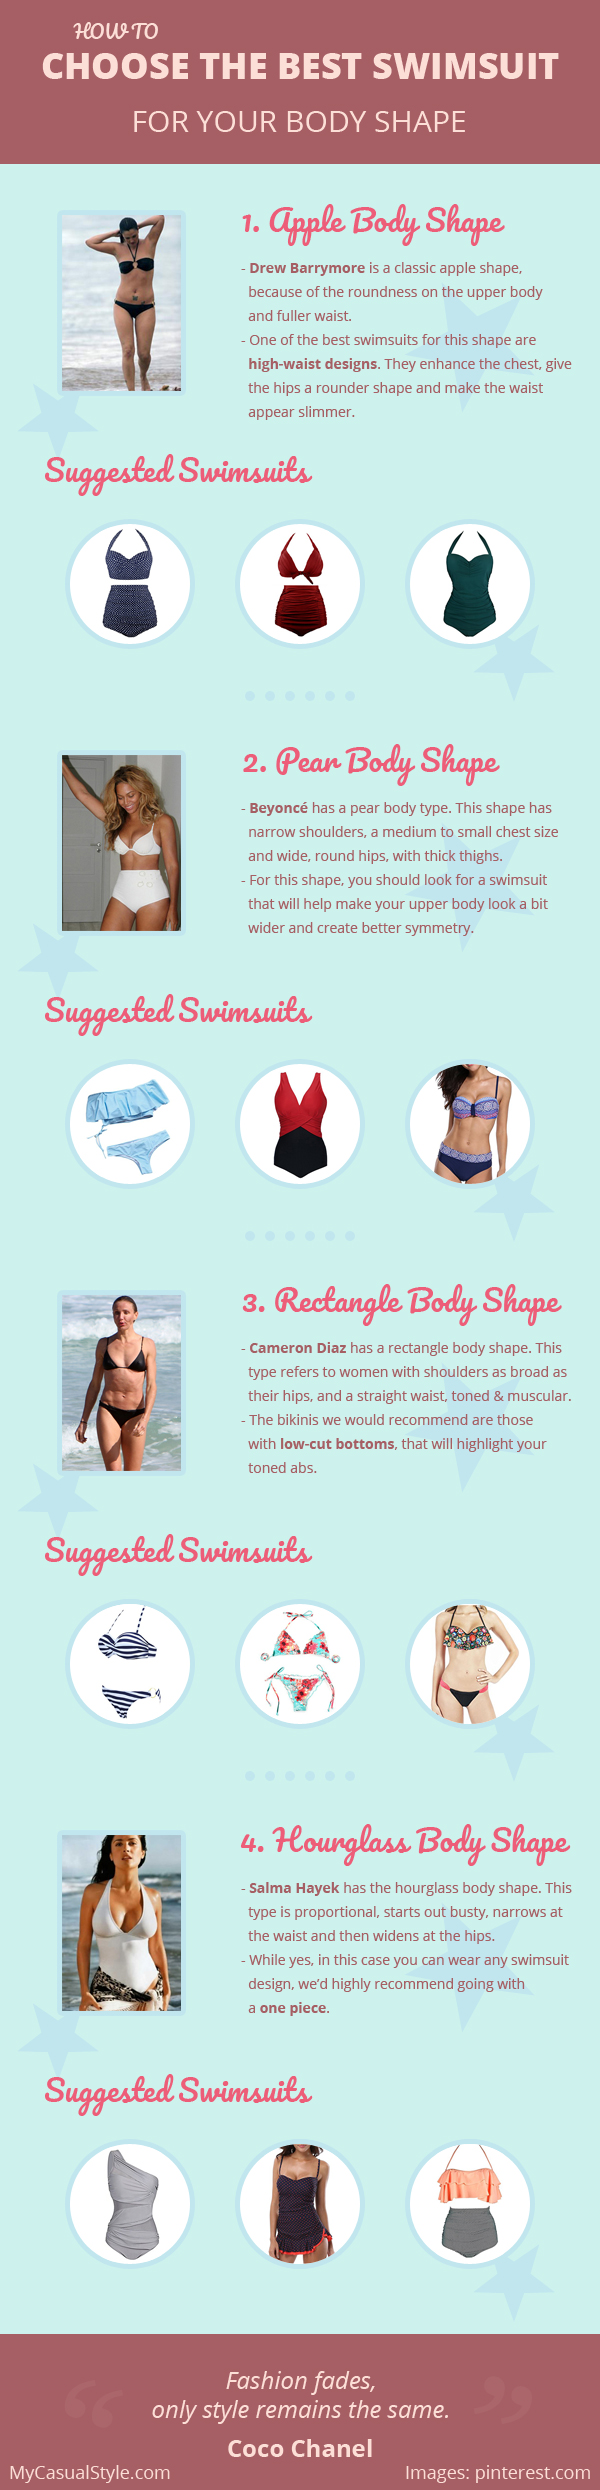 How To Choose The Best Swimsuit For Your Body Shape + Some Suggestions